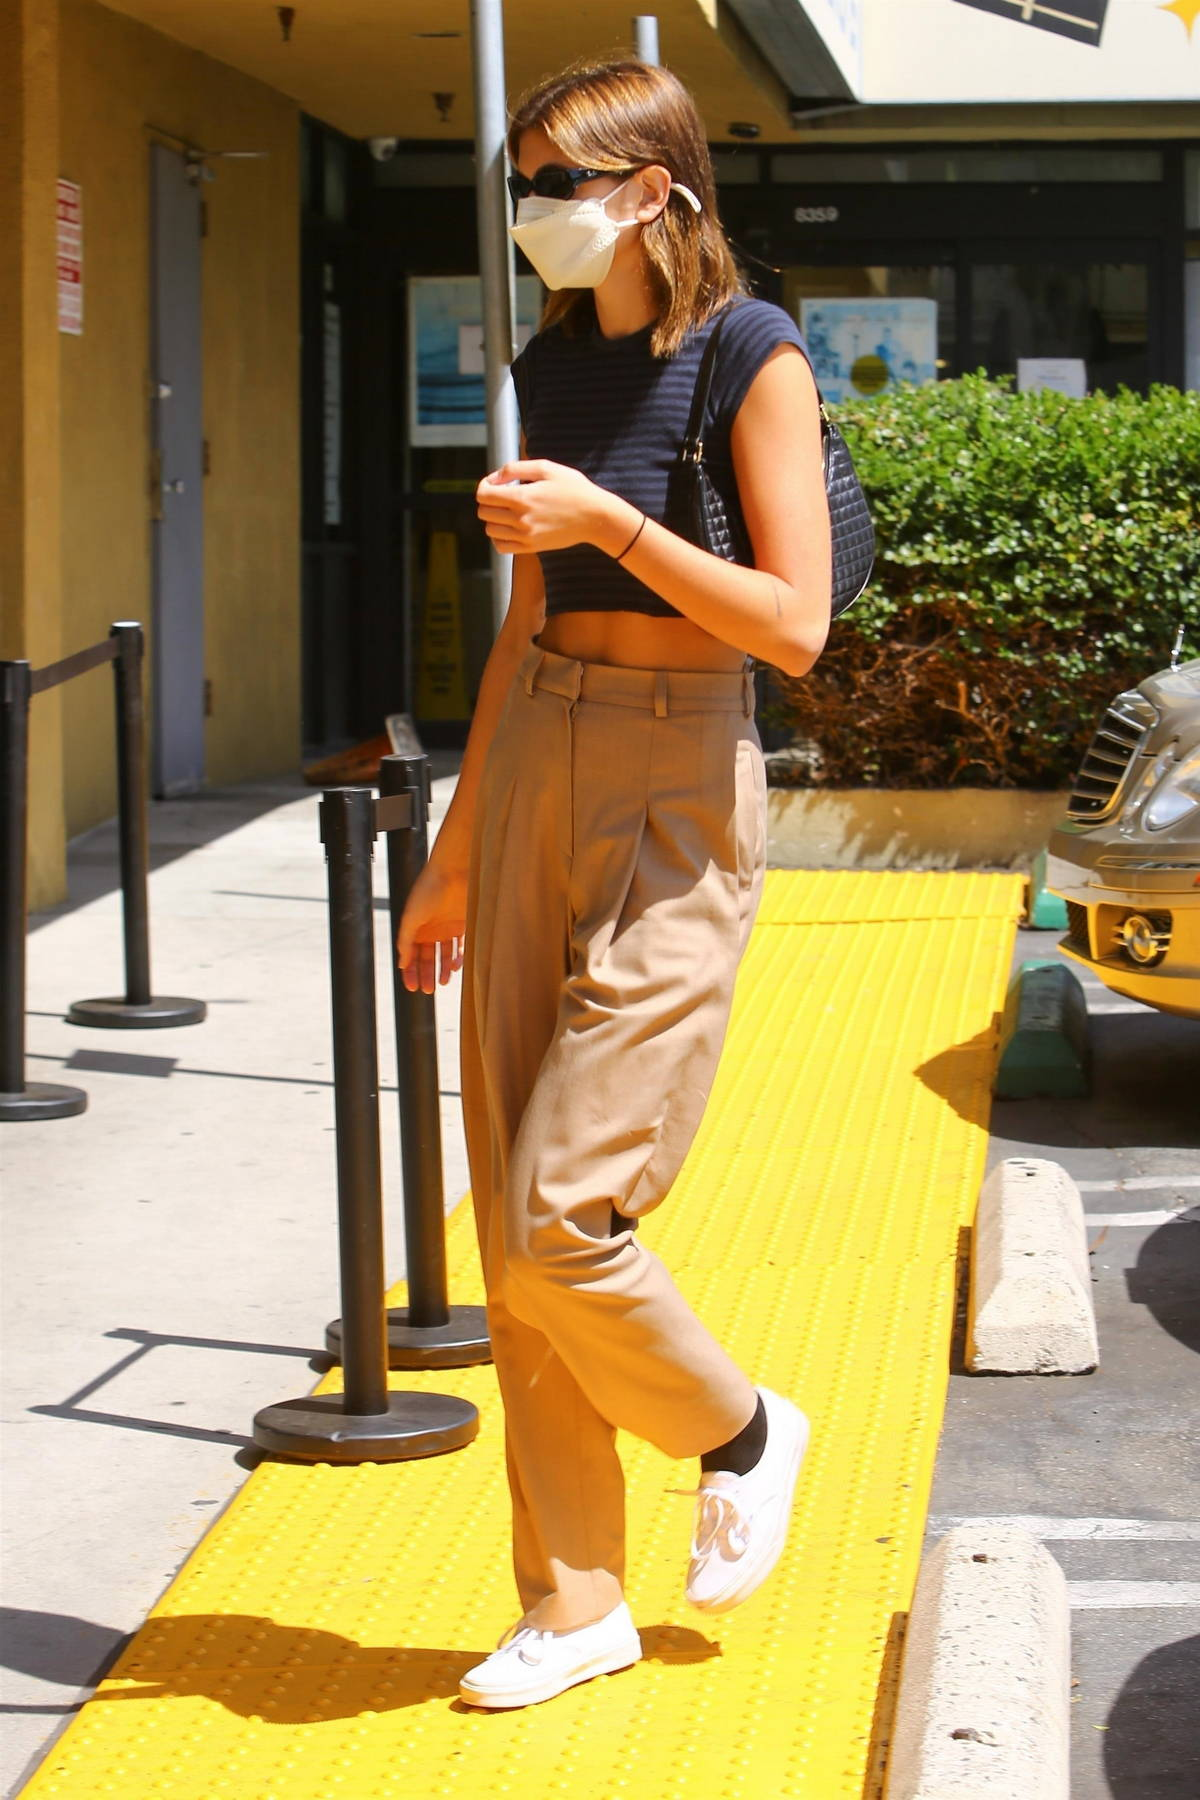 Kaia Gerber wears a black crop top and brown pleated trousers while stopping by the Earth Bar in West Hollywood, California